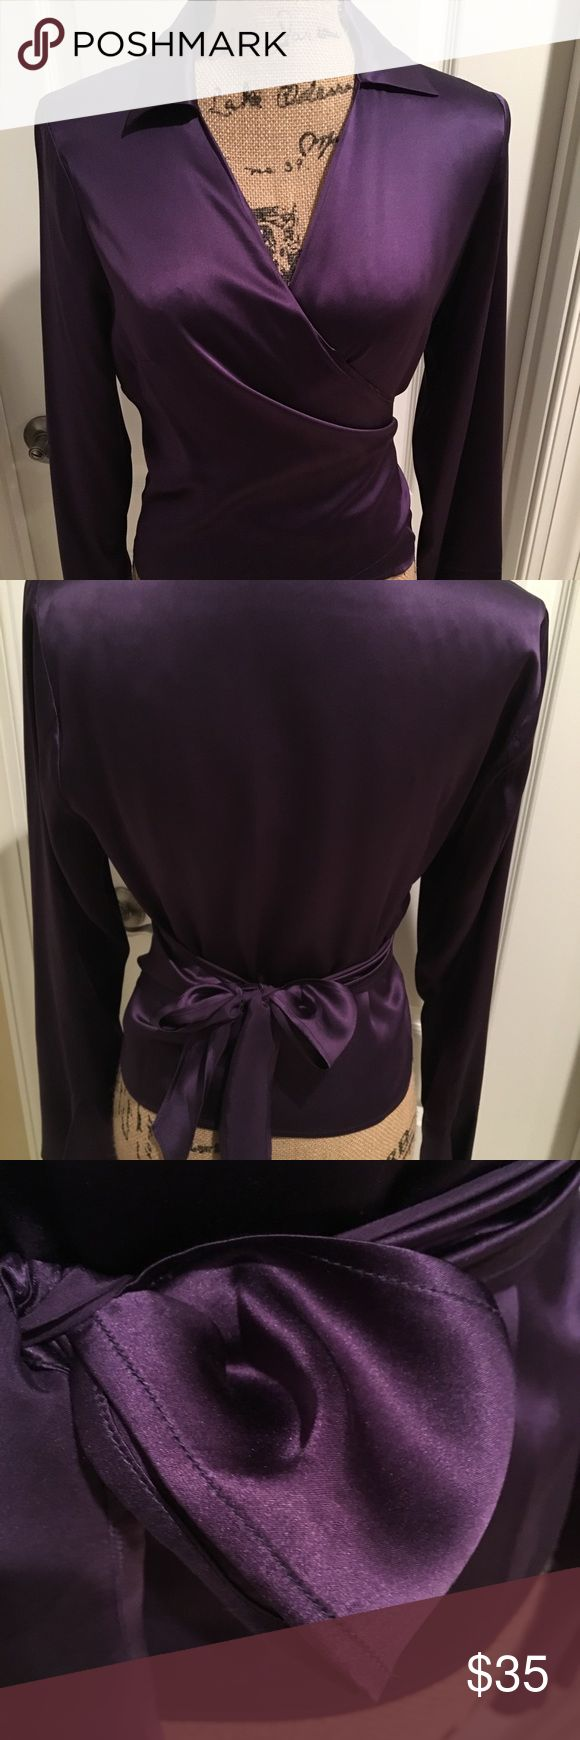 GORGEOUS deep violet silk wrap blouse!!! 💗 This rich jewel-tone 100% silk wrap blouse is simply stunning!  The most elegant shade of purple, it's a true wrap blouse that ties in back and boasts bell sleeve detail. Tops Blouses